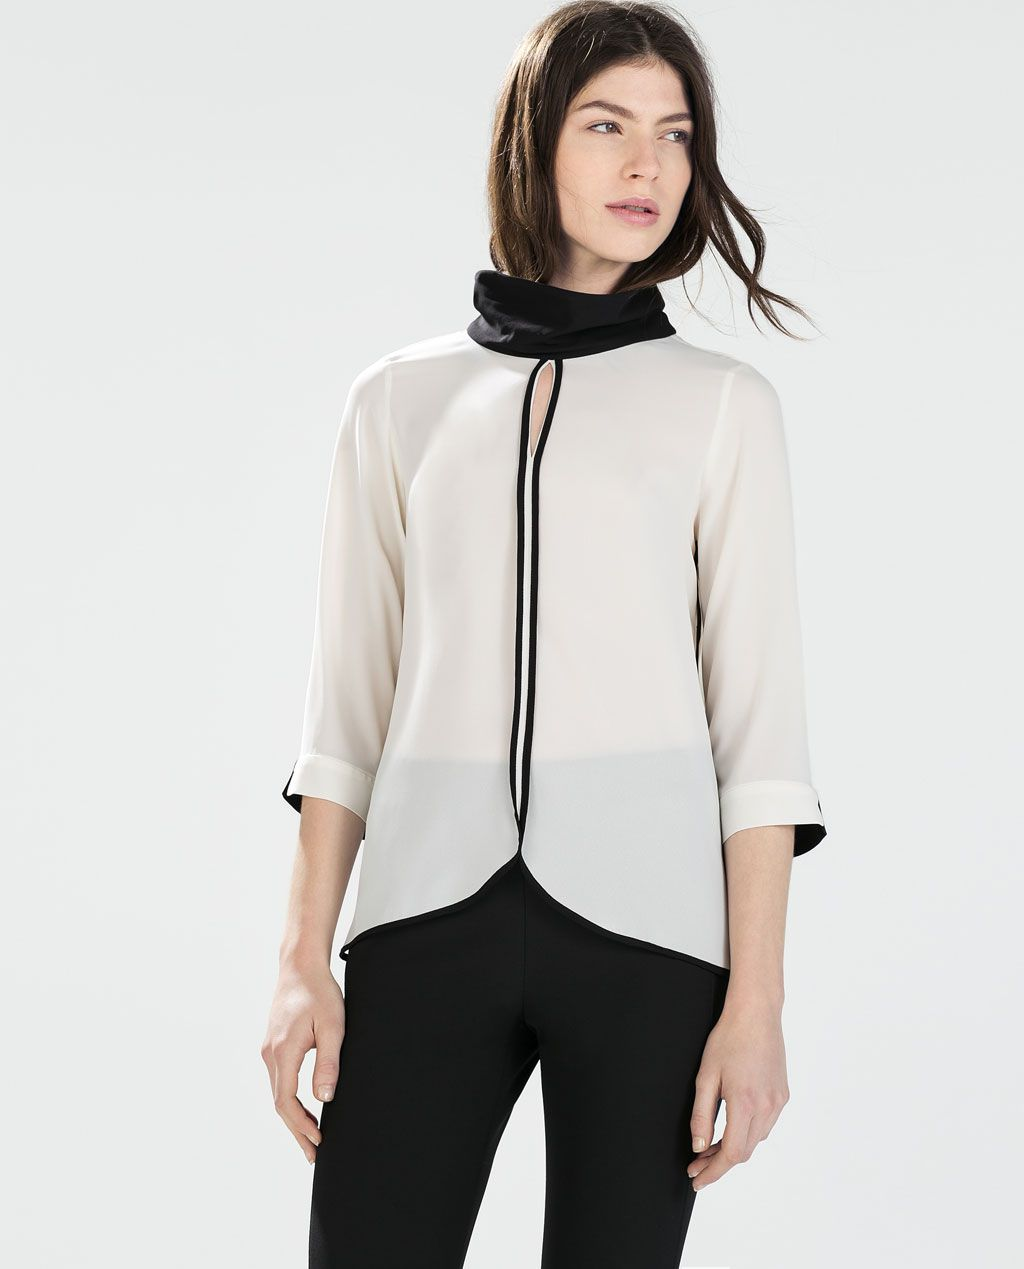 8744d1eeb2fde6 BLOUSE WITH HIGH COLLAR-Tops-WOMAN | ZARA United States | I mean ...